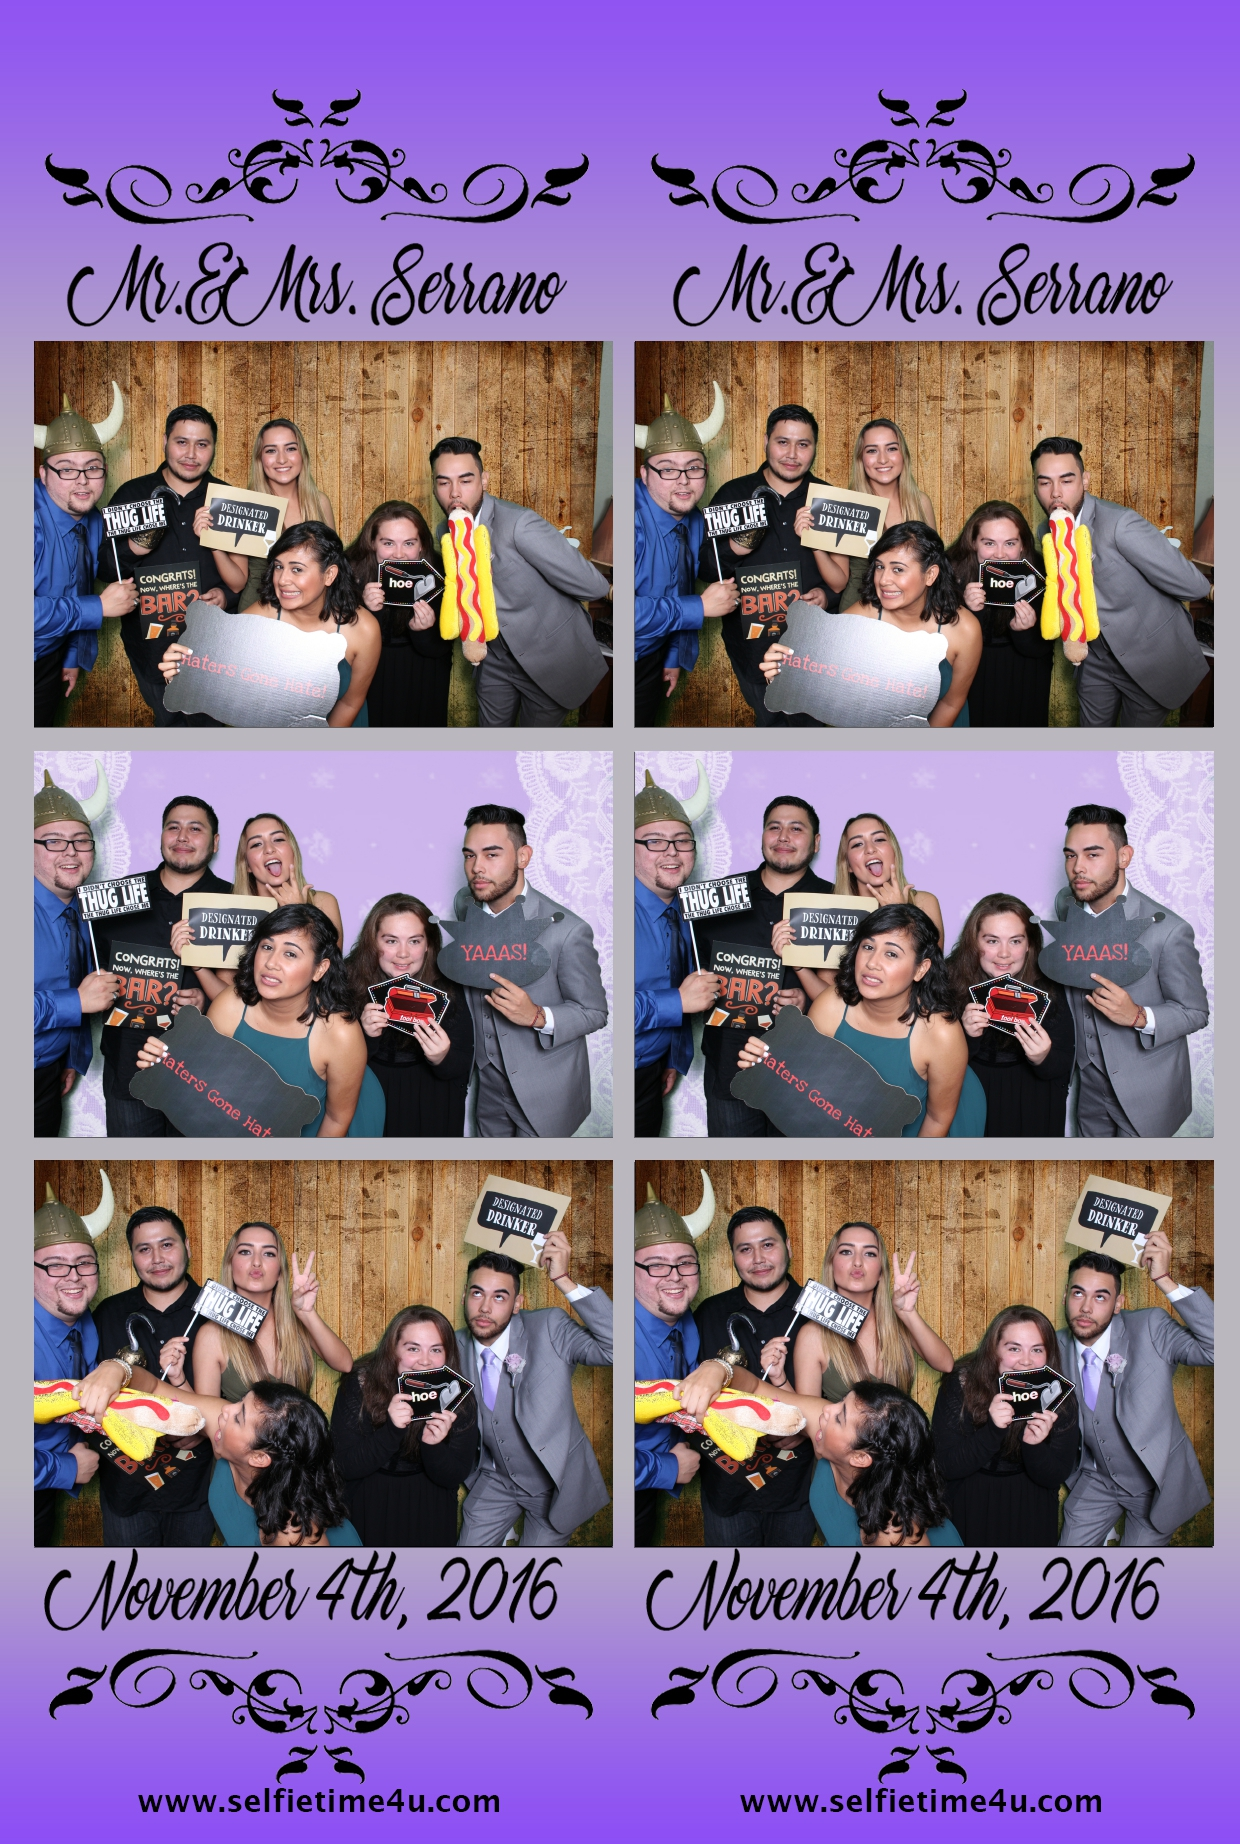 Fun at the wedding